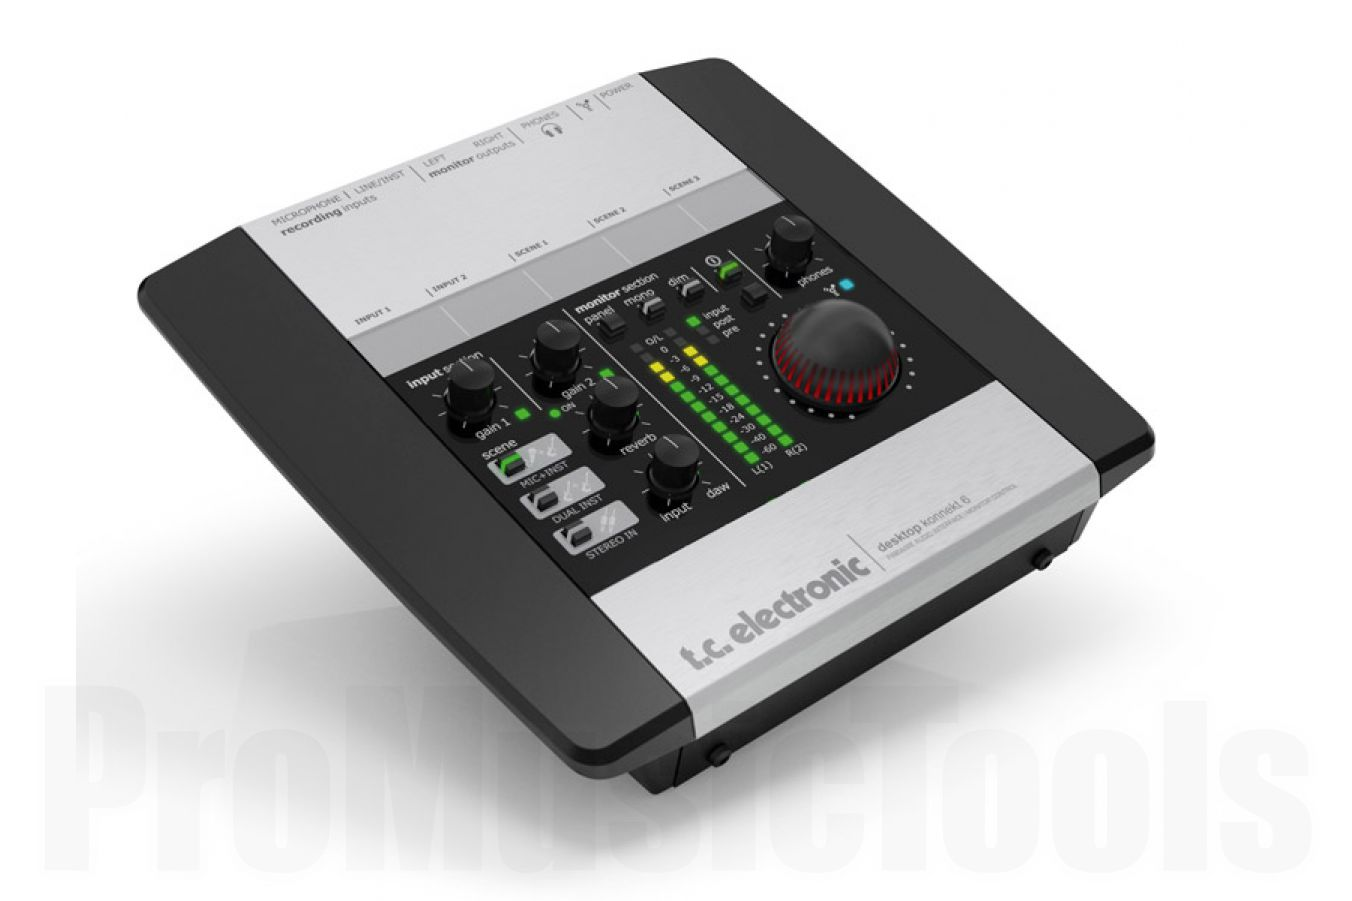 TC Electronic Desktop Konnekt 6 FireWire Audio Interface - b-stock - Restposten